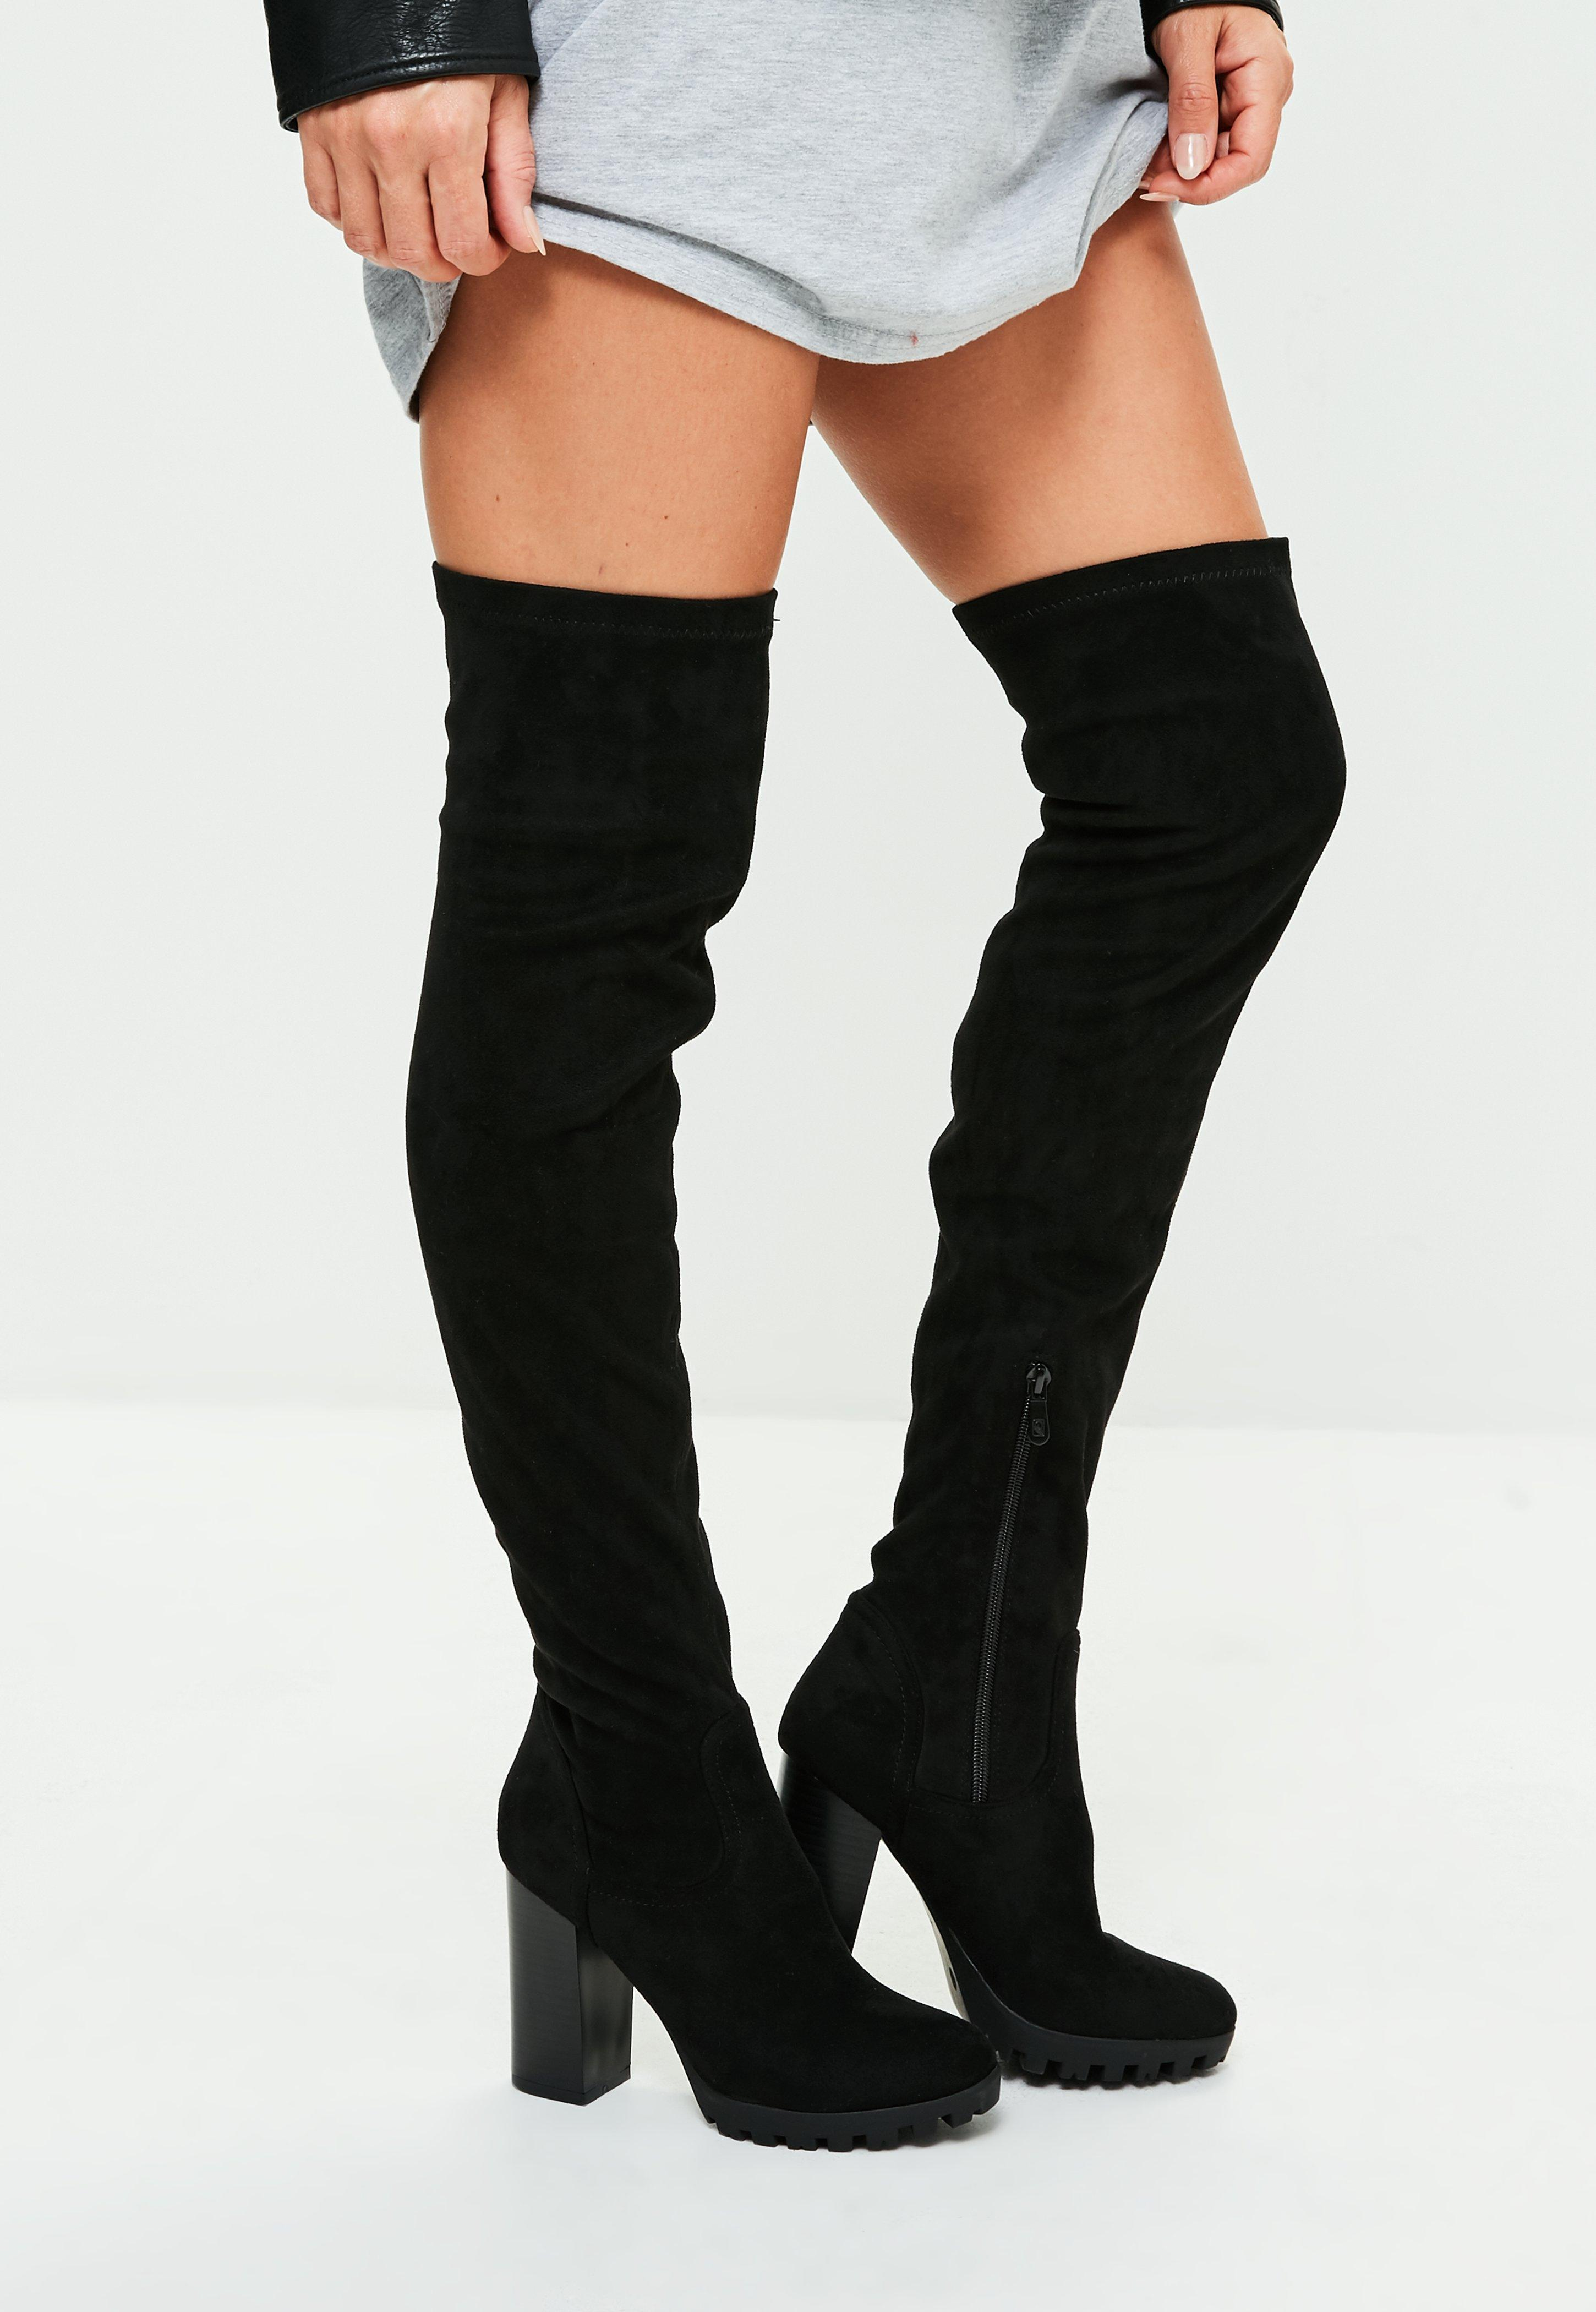 6d1707489c Missguided Black Faux Suede Cleated Sole Over The Knee Boots in ...